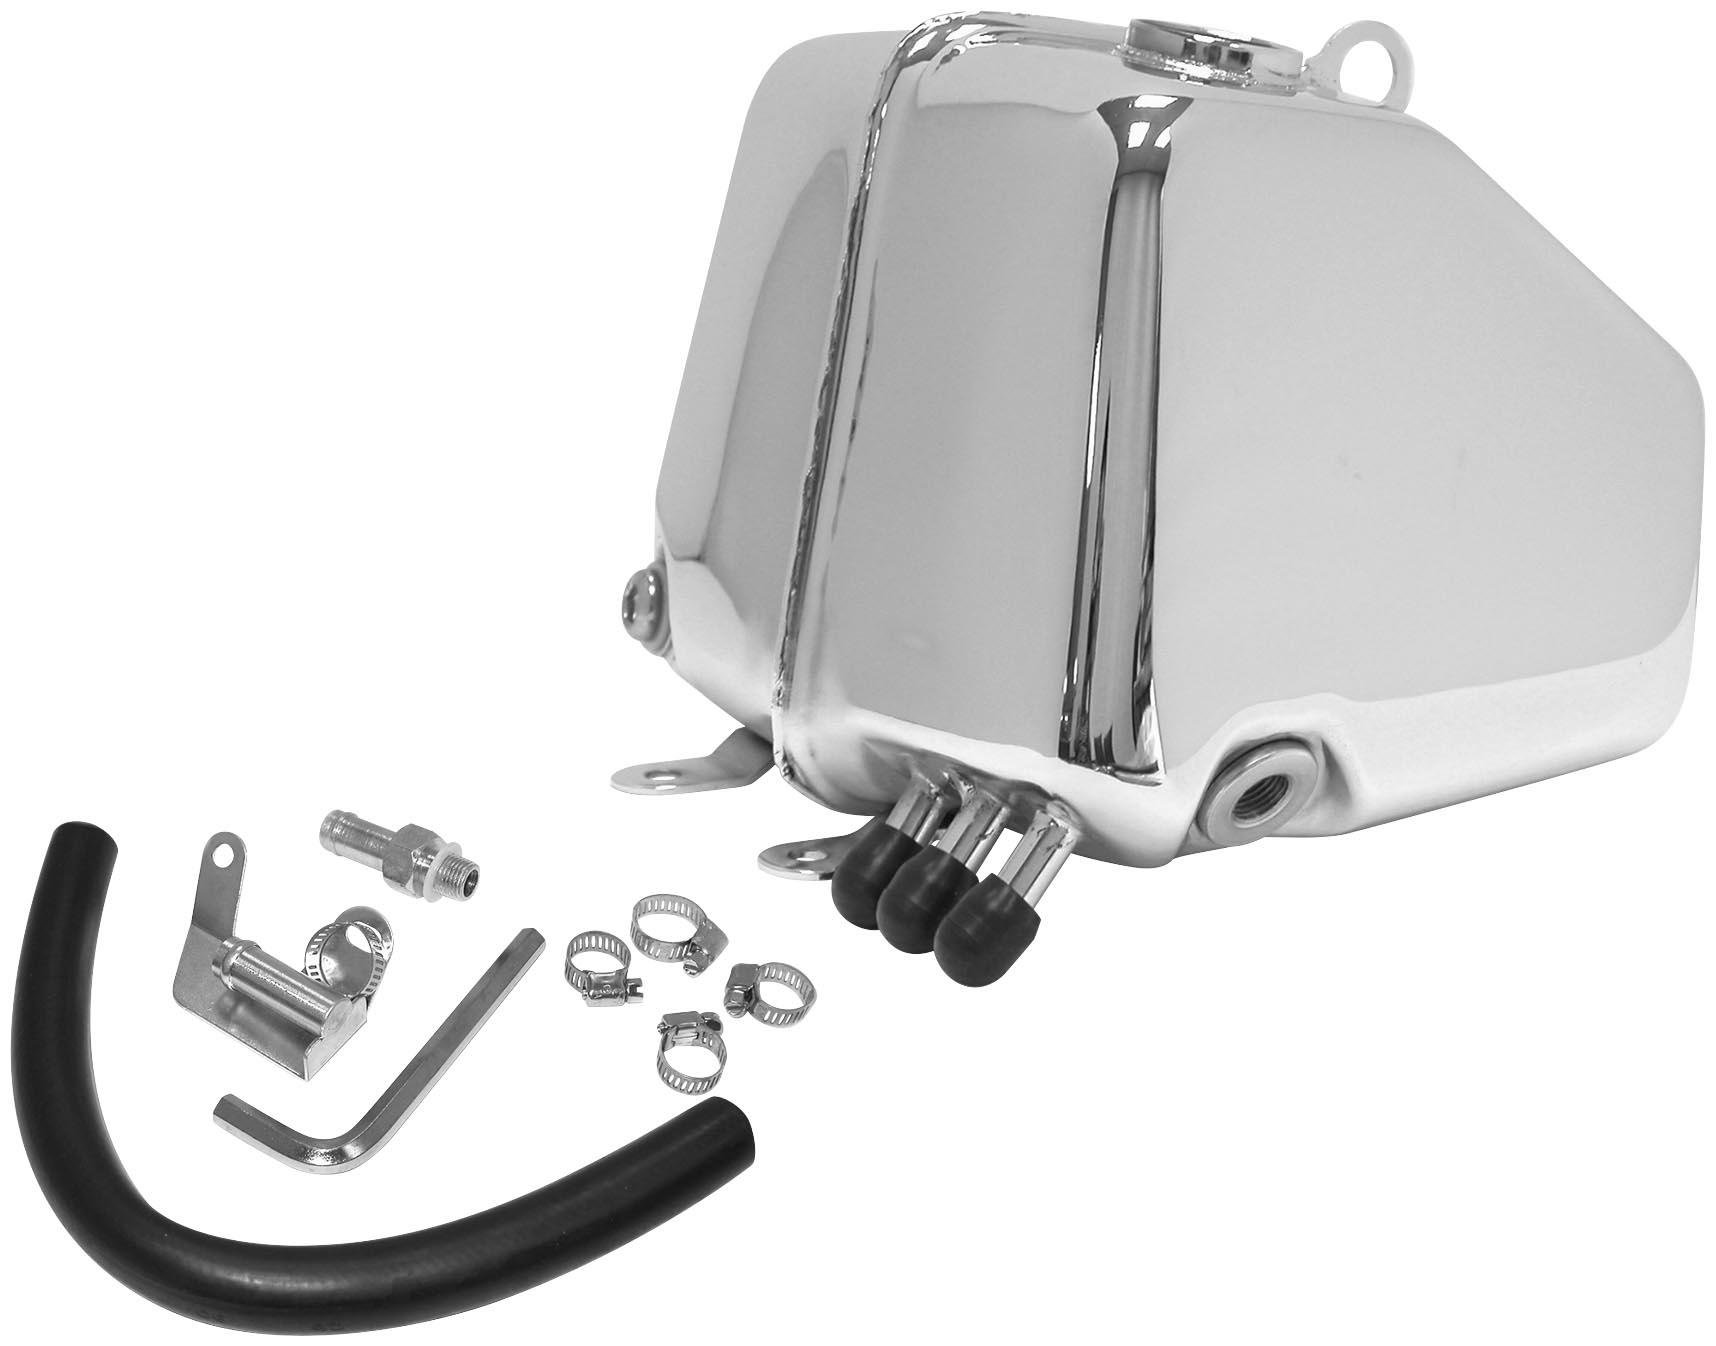 Bikers Choice FXR Oil Tank - Chrome 011370 by Biker's Choice (Image #1)